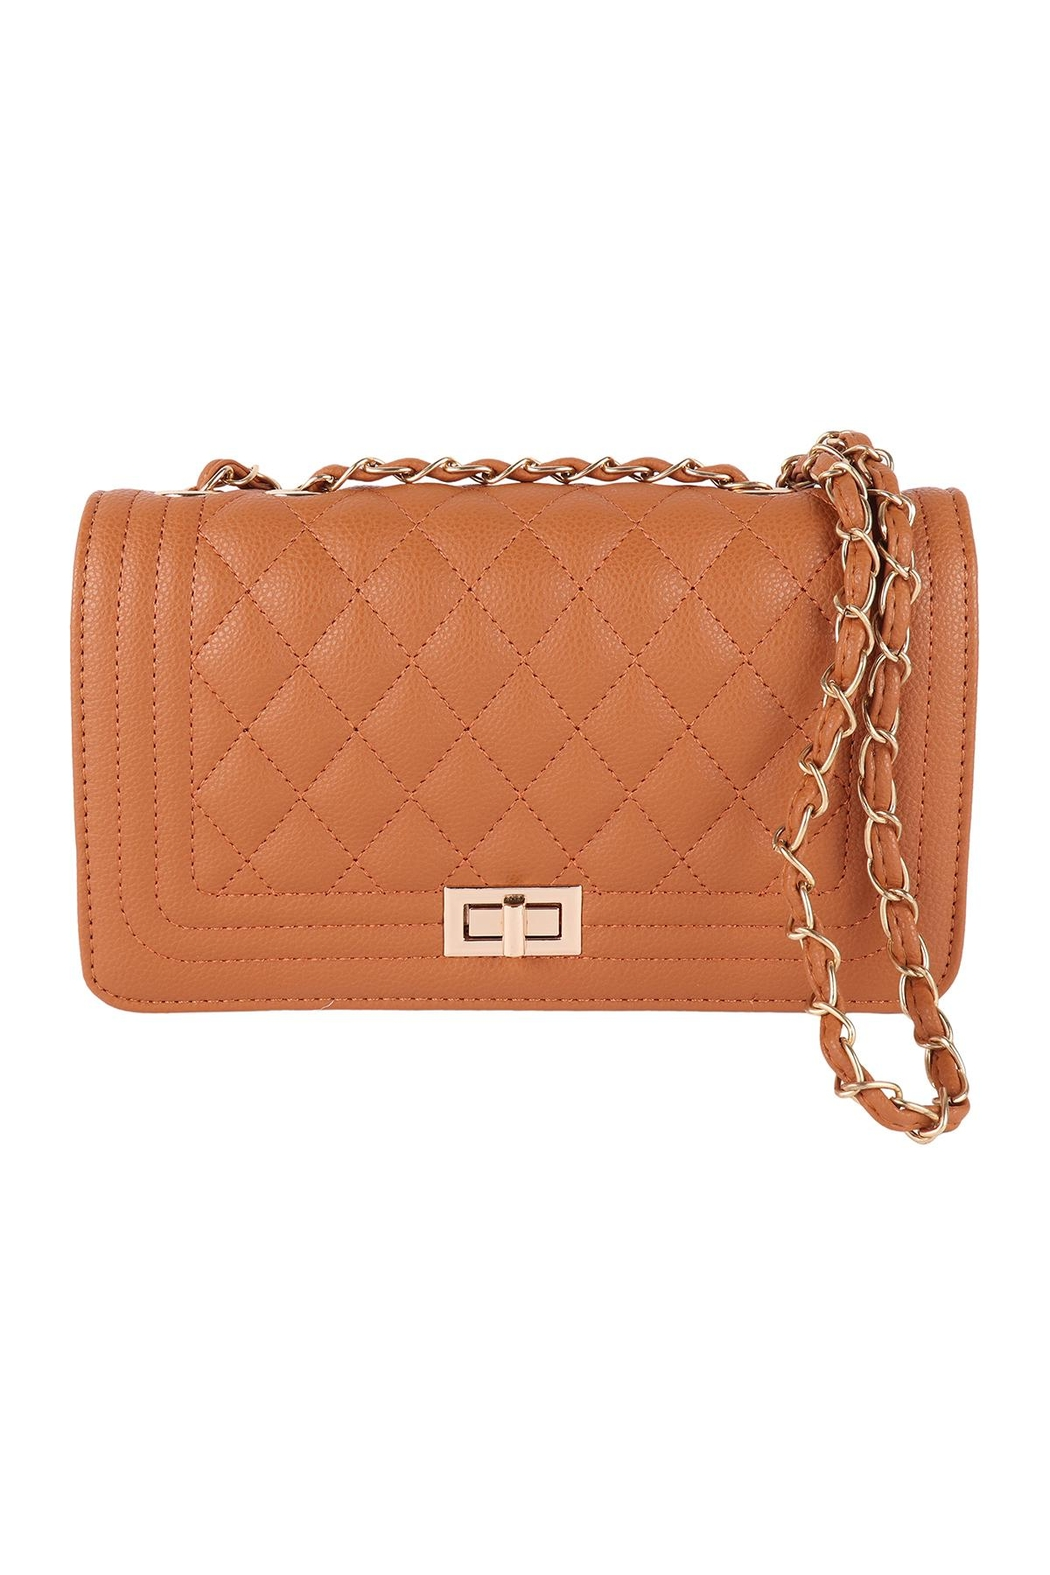 Riah Fashion Quilted-Diamond-Pattern-Fashion-Sling-Bag - Front Cropped Image